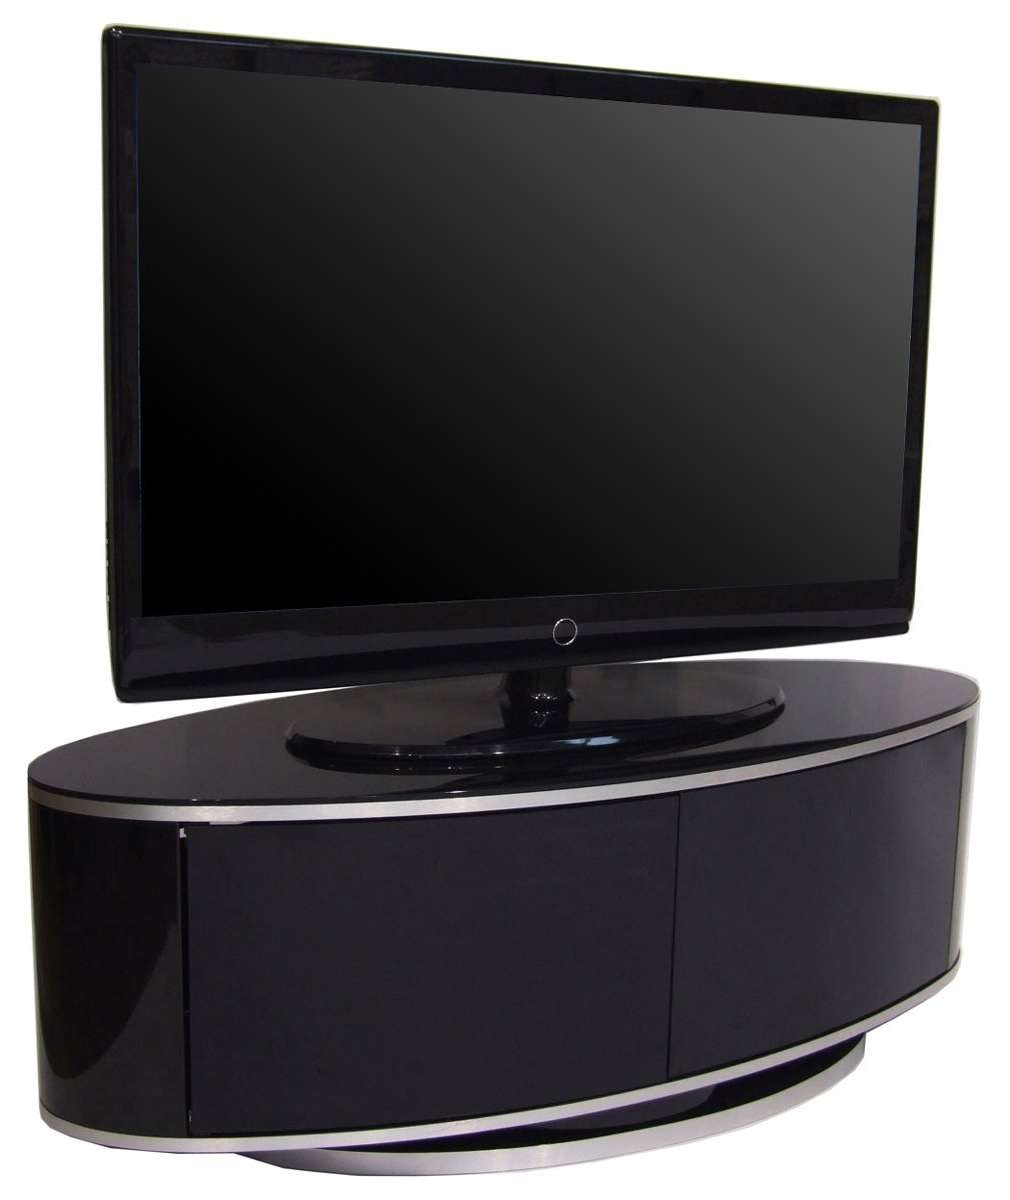 Luna High Gloss Black Oval Tv Cabinet With Regard To White Gloss Oval Tv Stands (View 10 of 15)